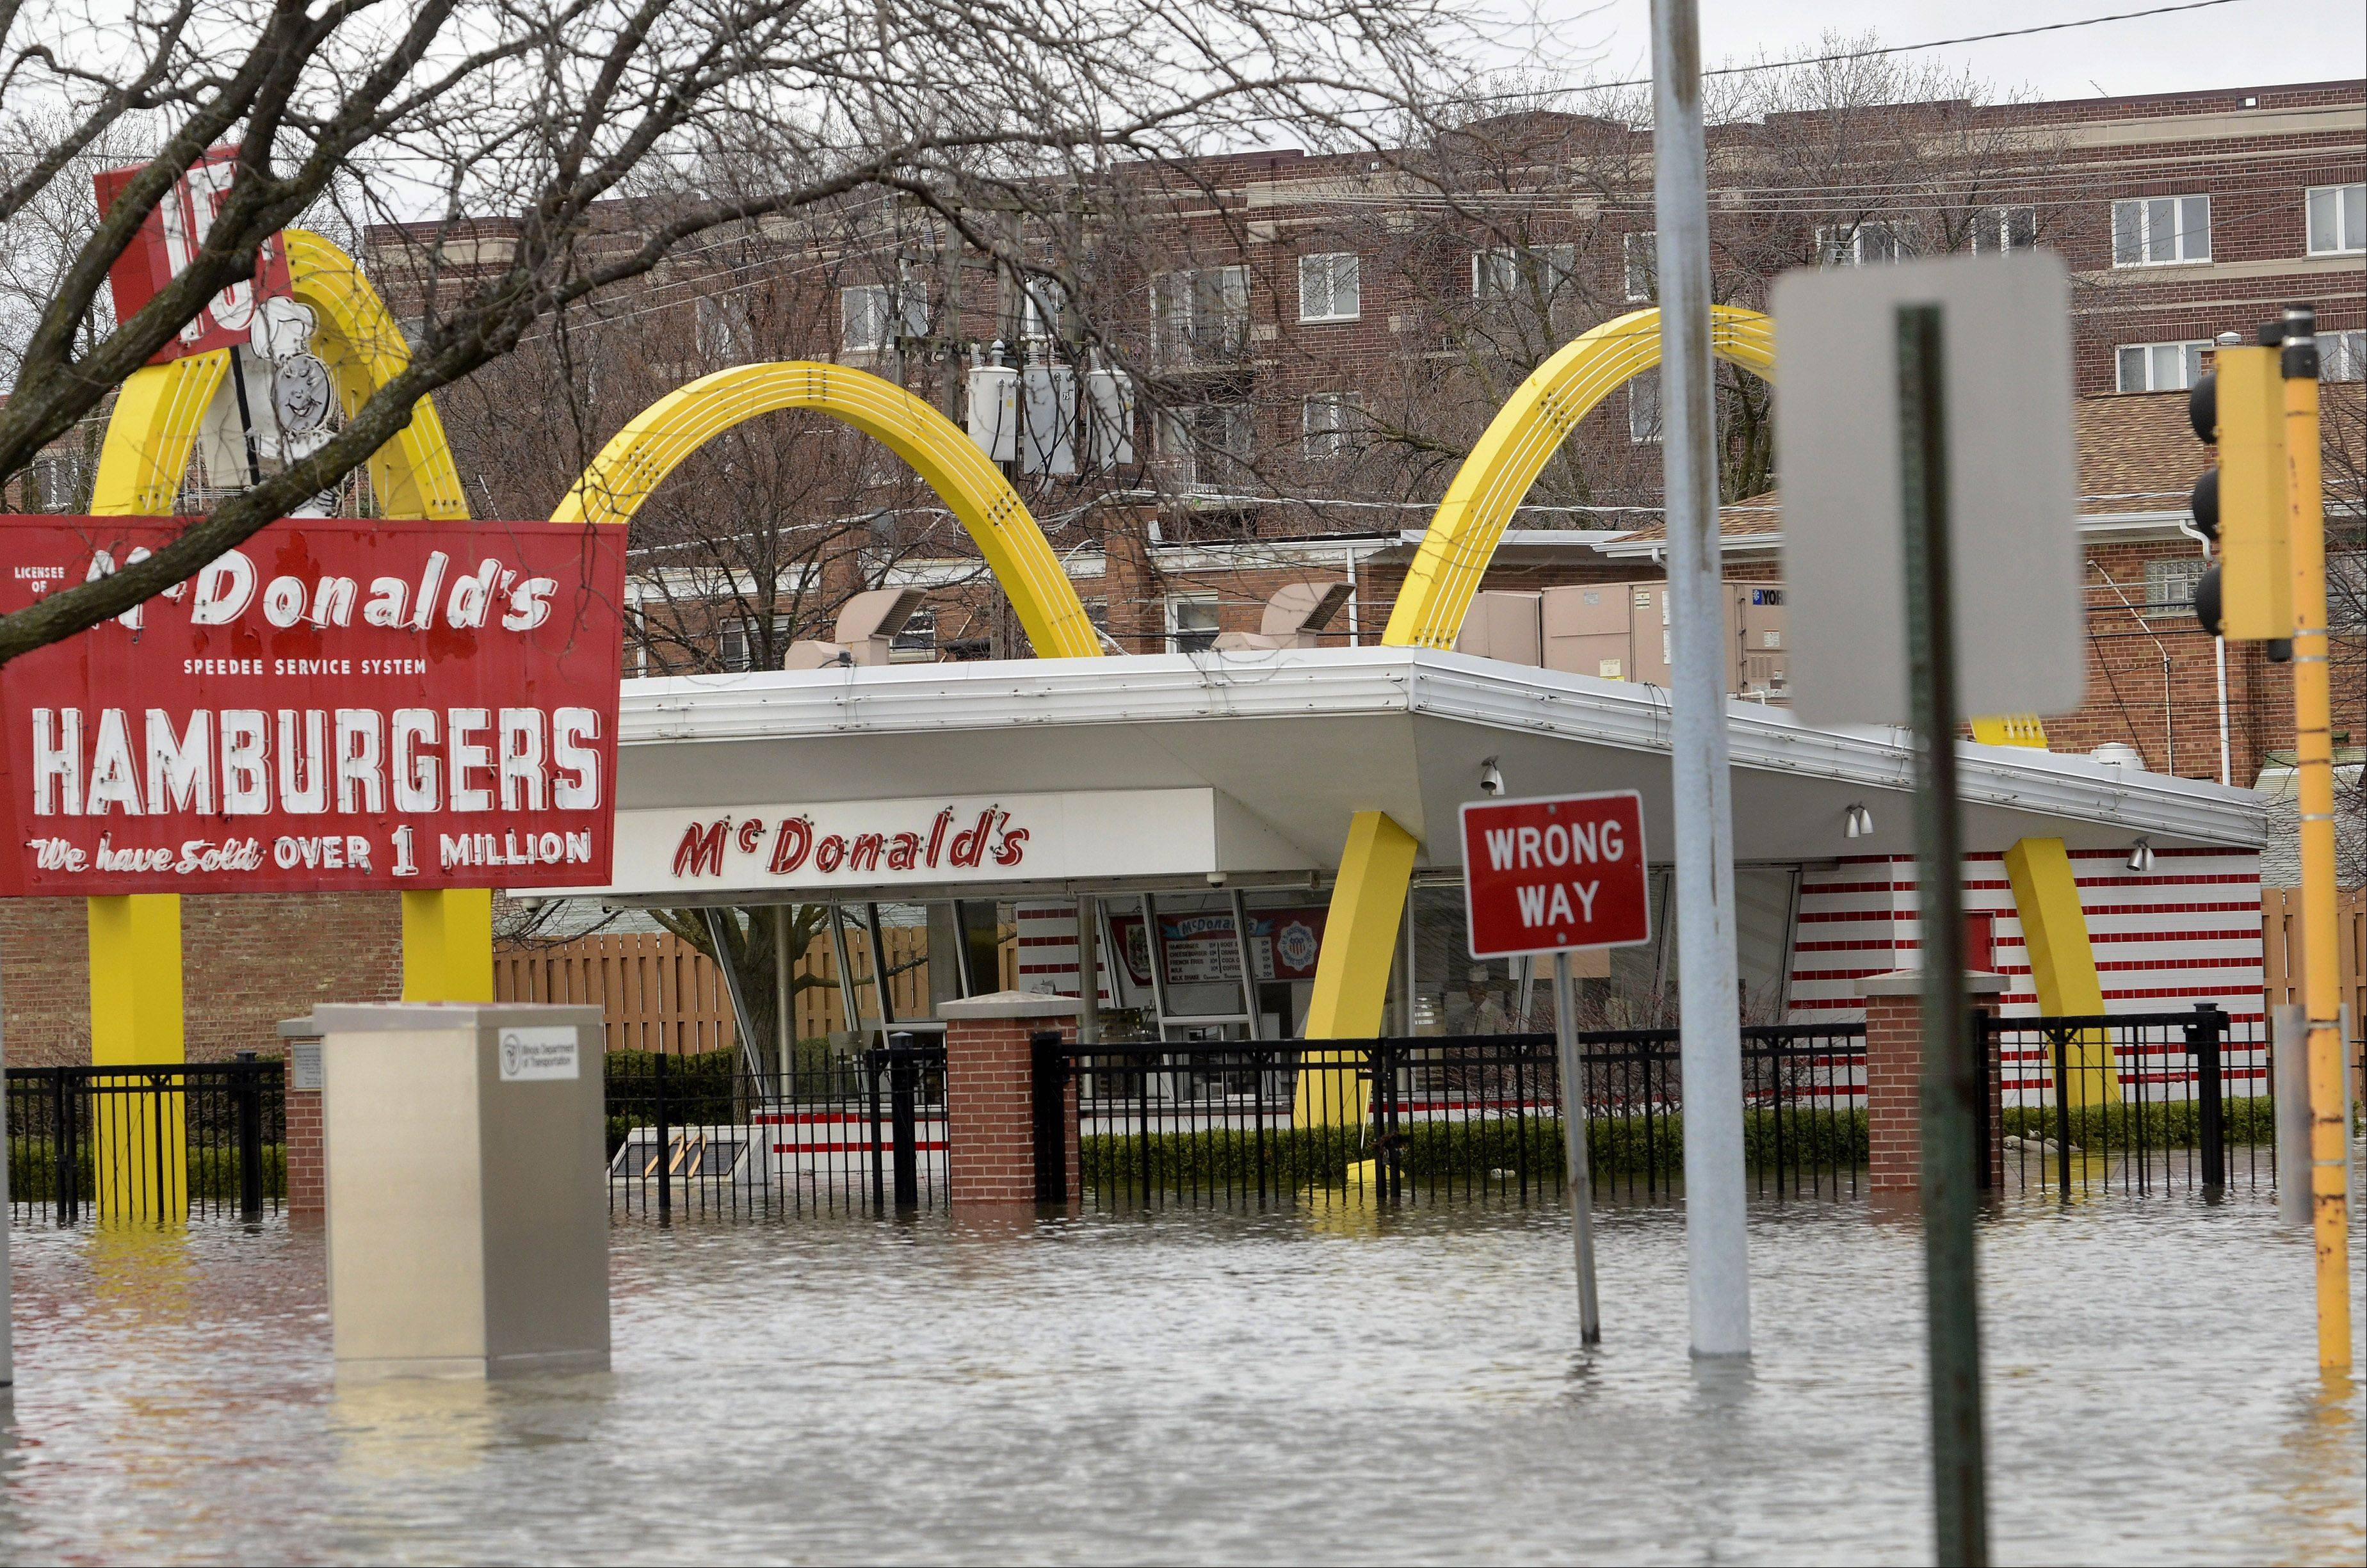 The first McDonald's museum in Des Plaines sustained damaged after major flooding in April -- a possible reason company officials are looking into moving or closing the location.